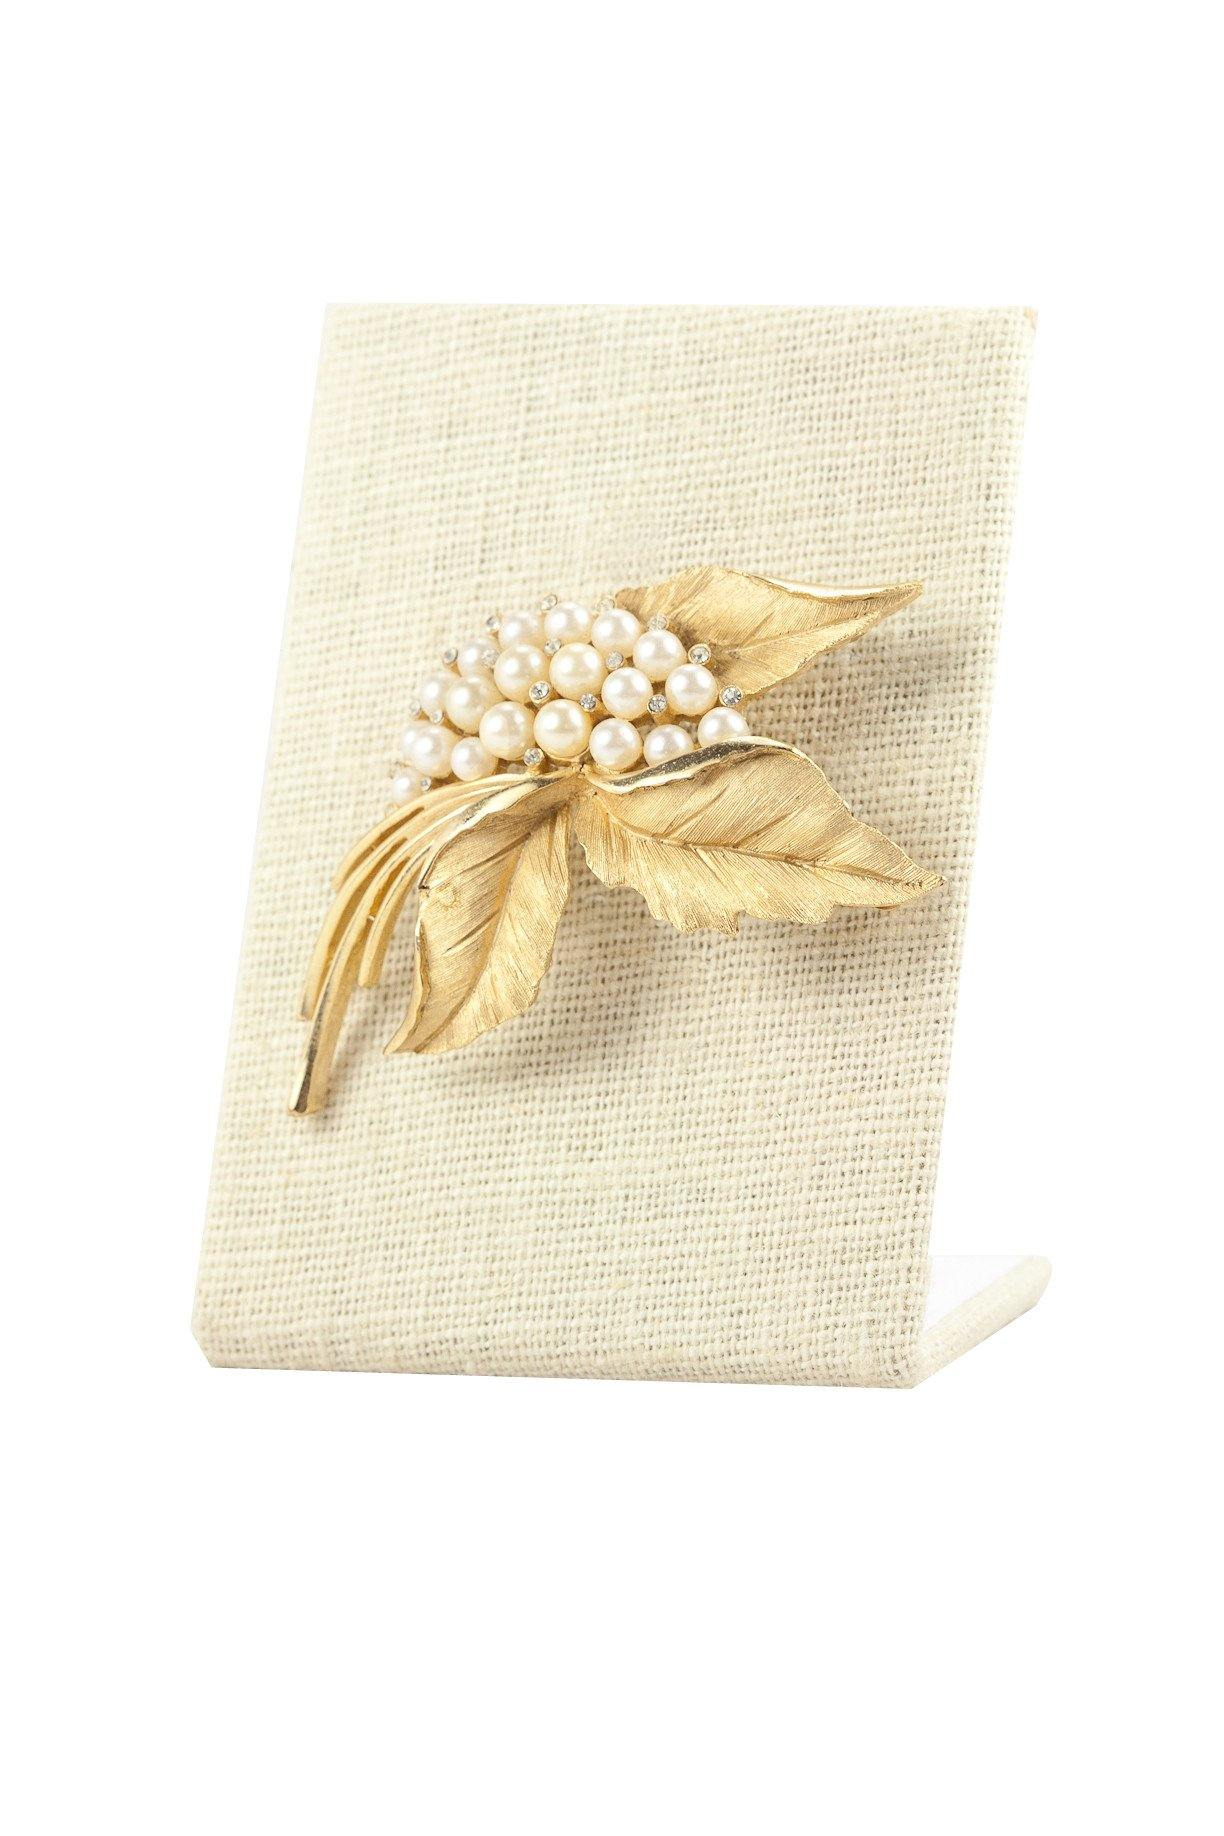 50's Trifari Pearl Embellished Leaf Brooch